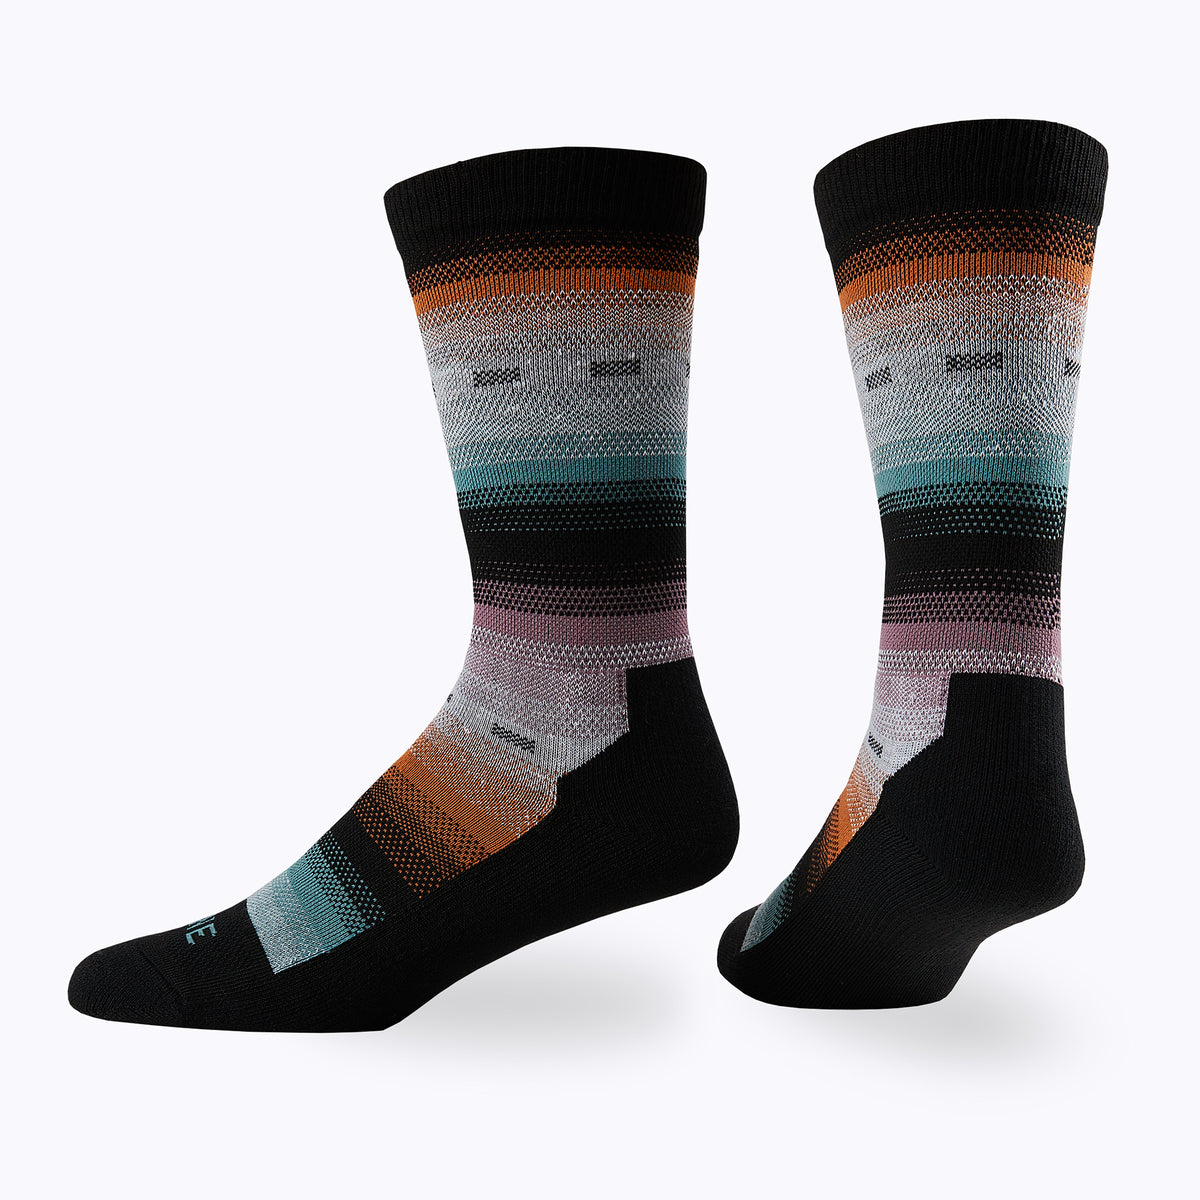 Serape Women's Mid-Calf Socks -  by Canyon x Lane Socks